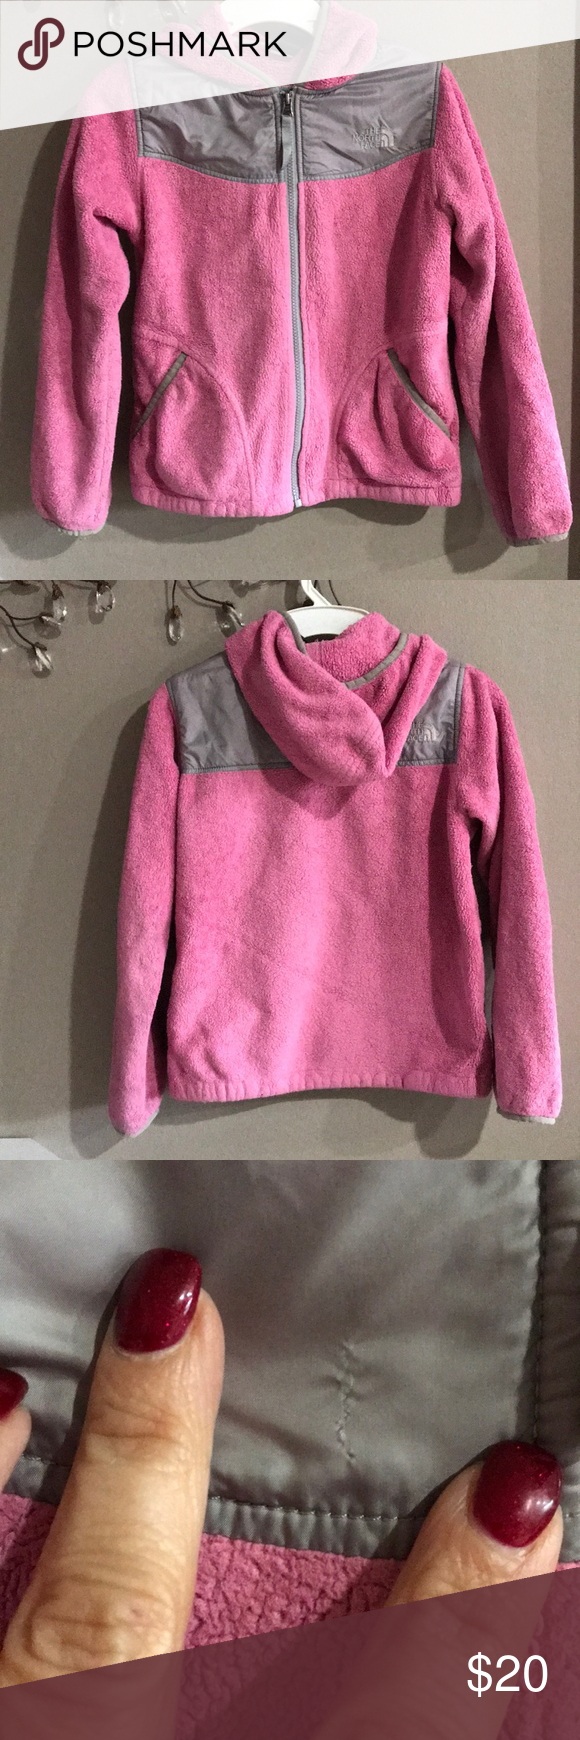 482dc5e58fe6 The North Face Pink Gray Fleece Full Zip Hoodie Pink with gray trim . Full